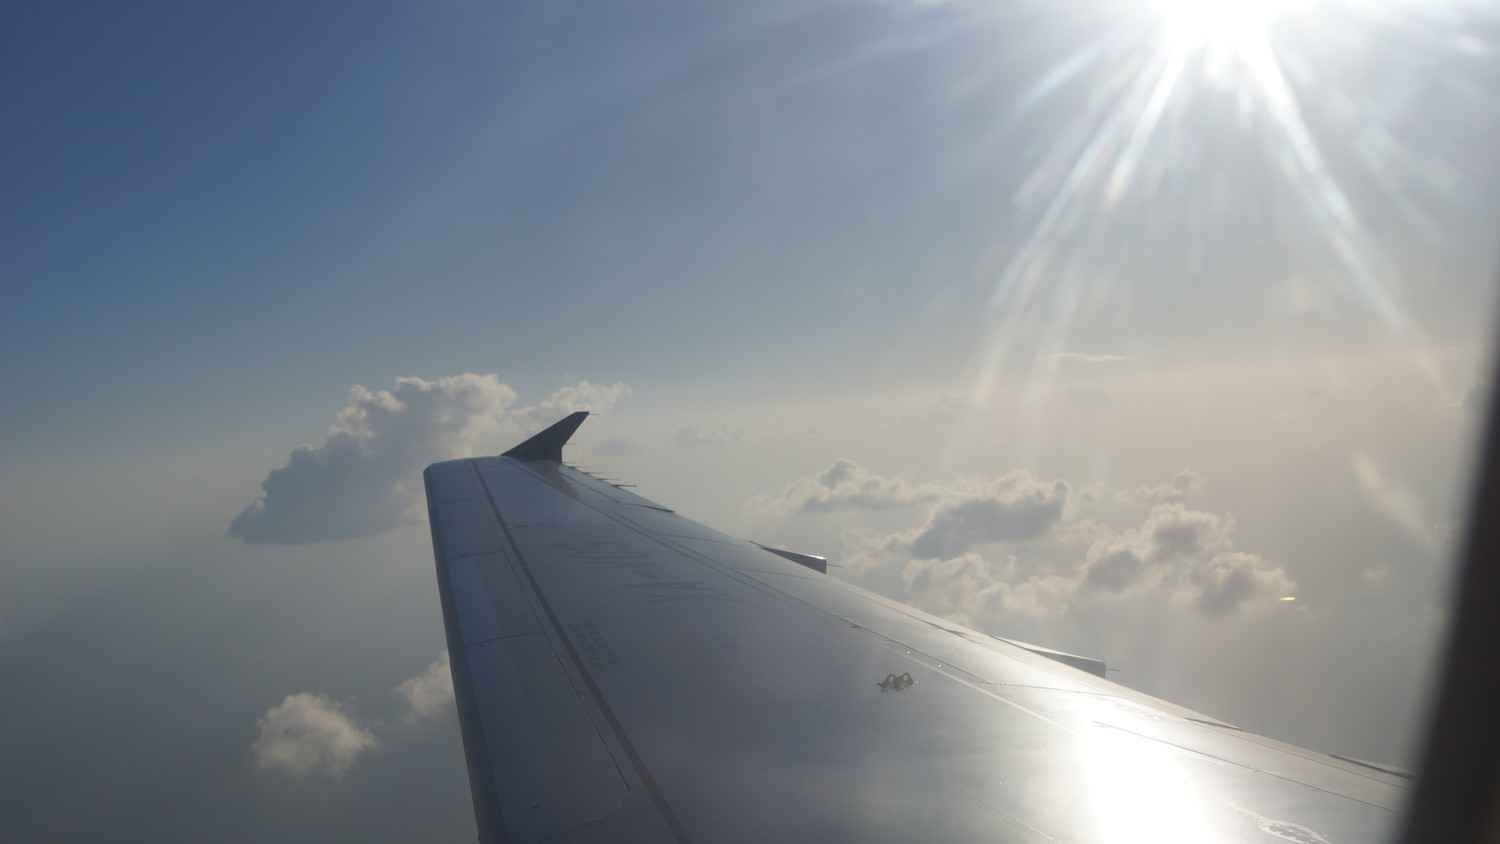 Looking out the window of a jet in transit to Cancun.